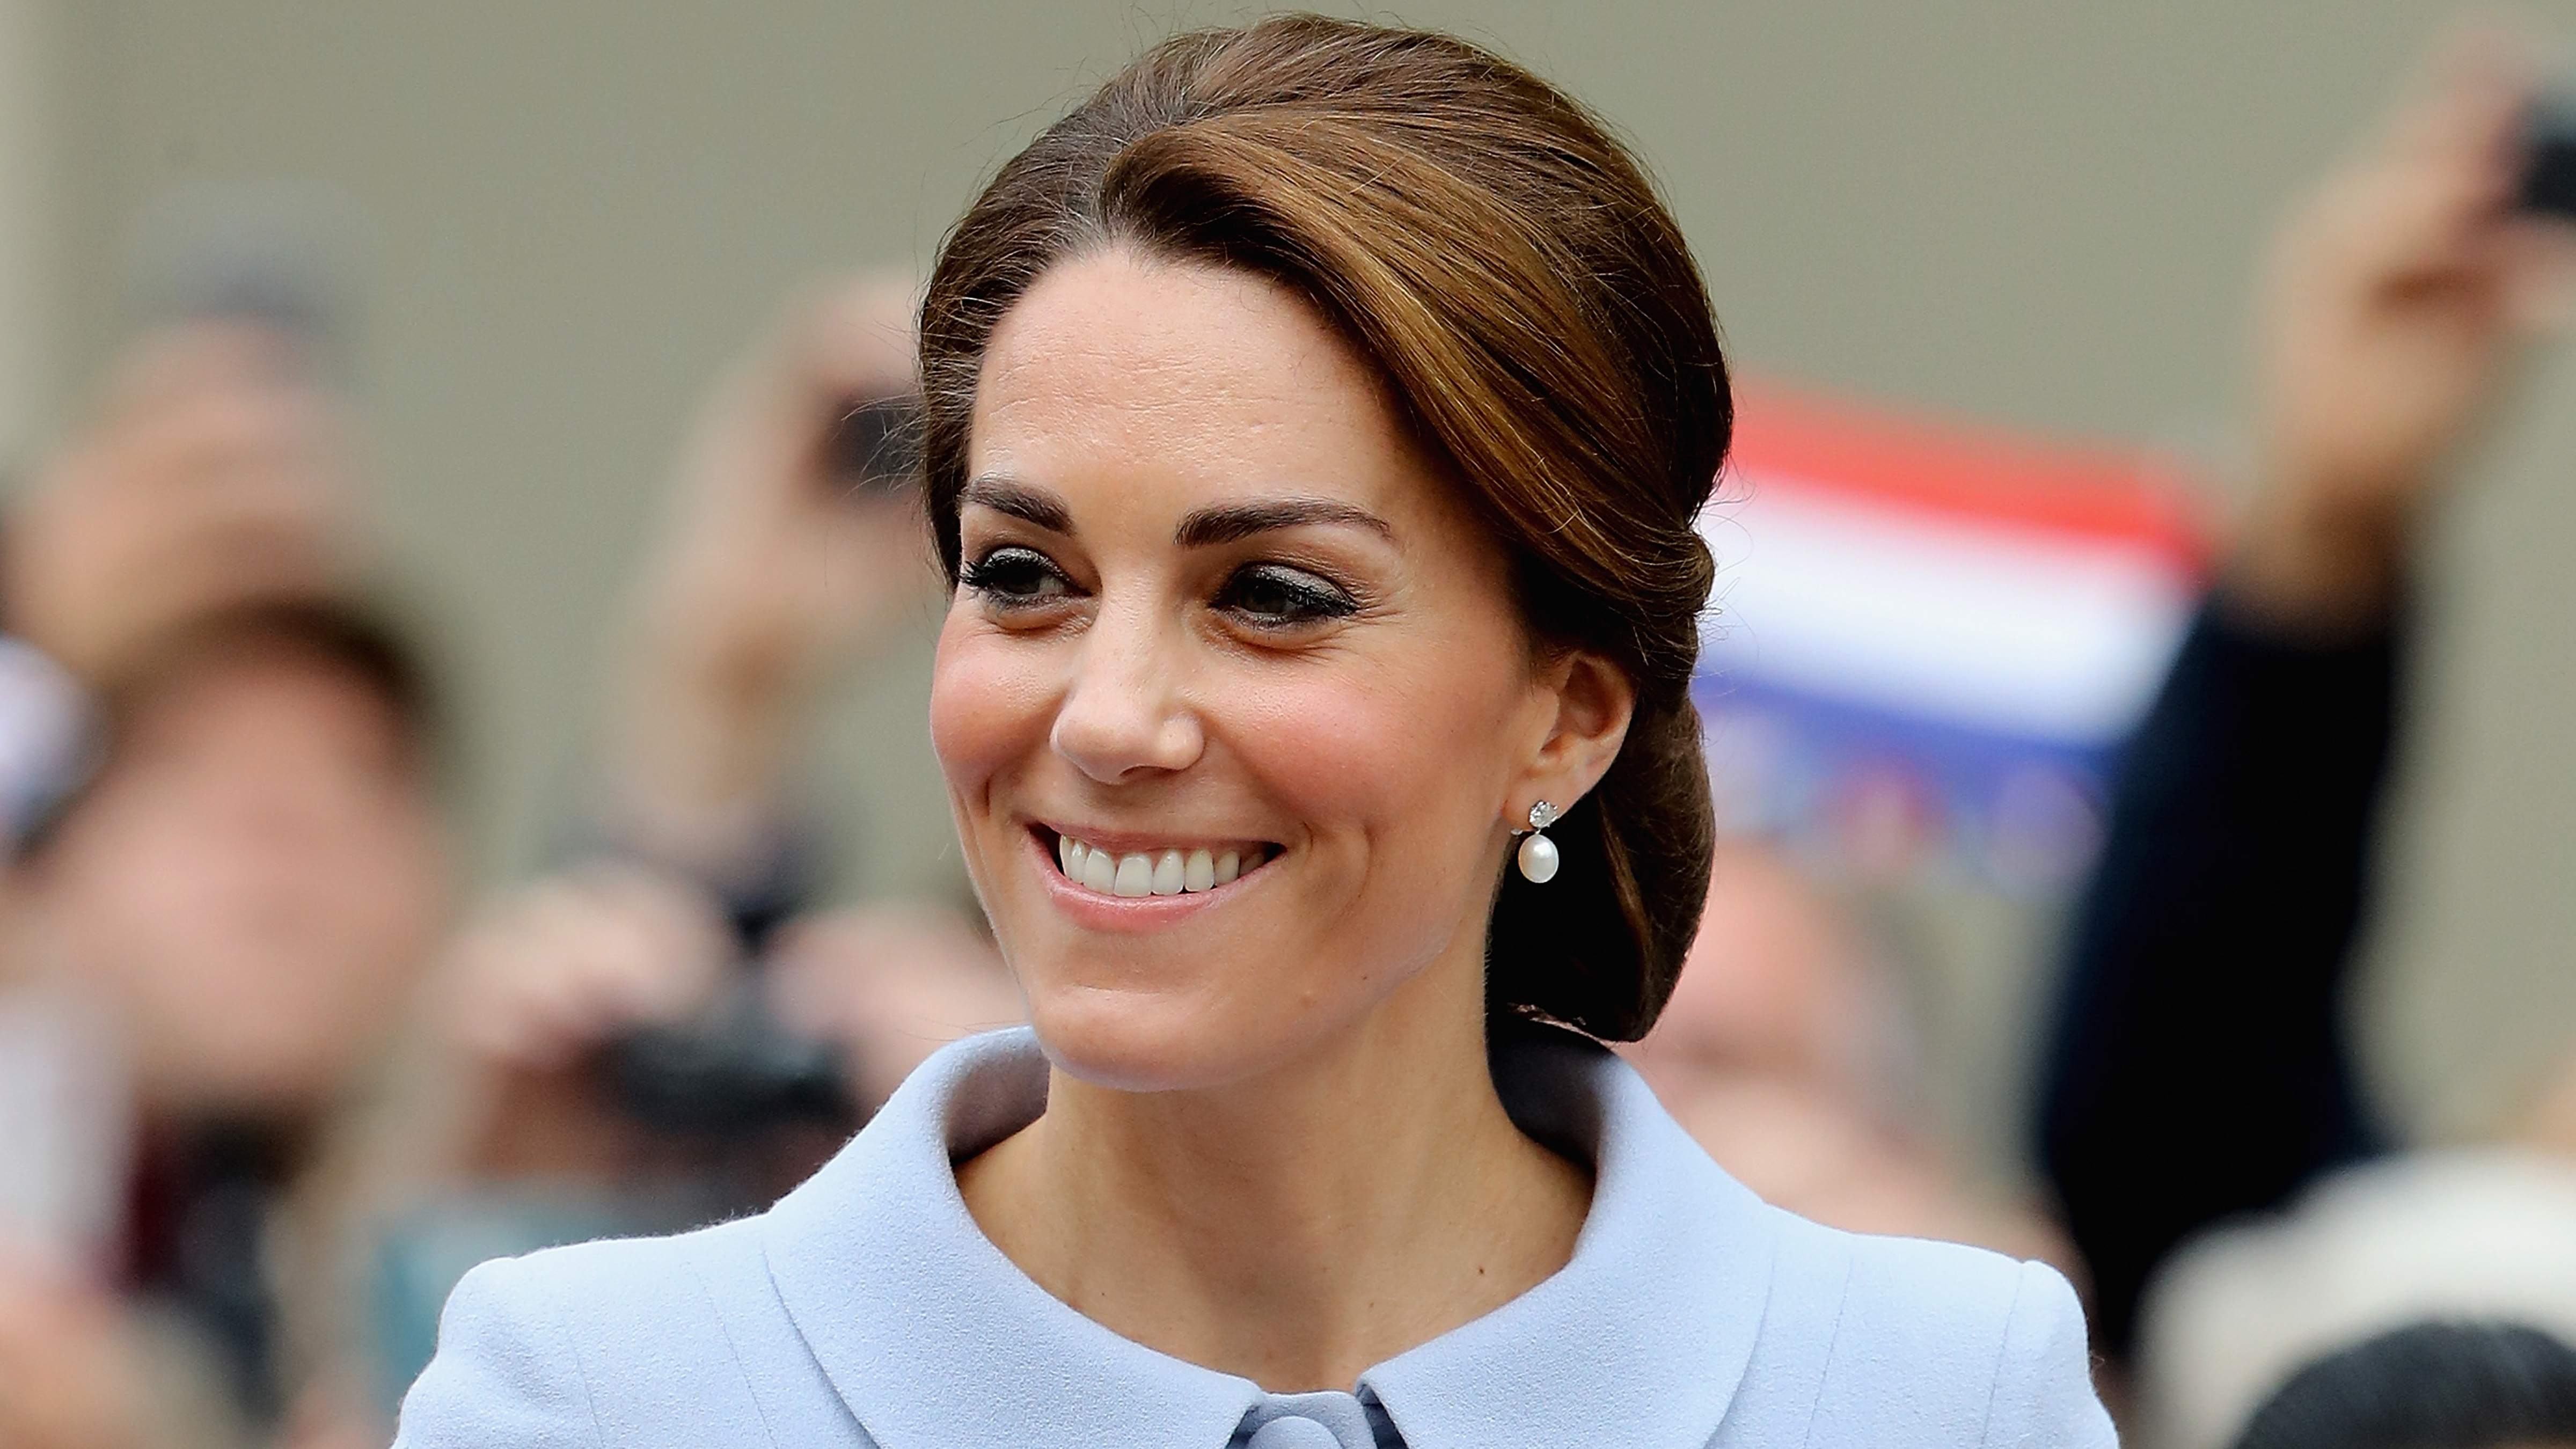 Kate Middleton Did a Secret Video Call Event on Her 9th Wedding Anniversary